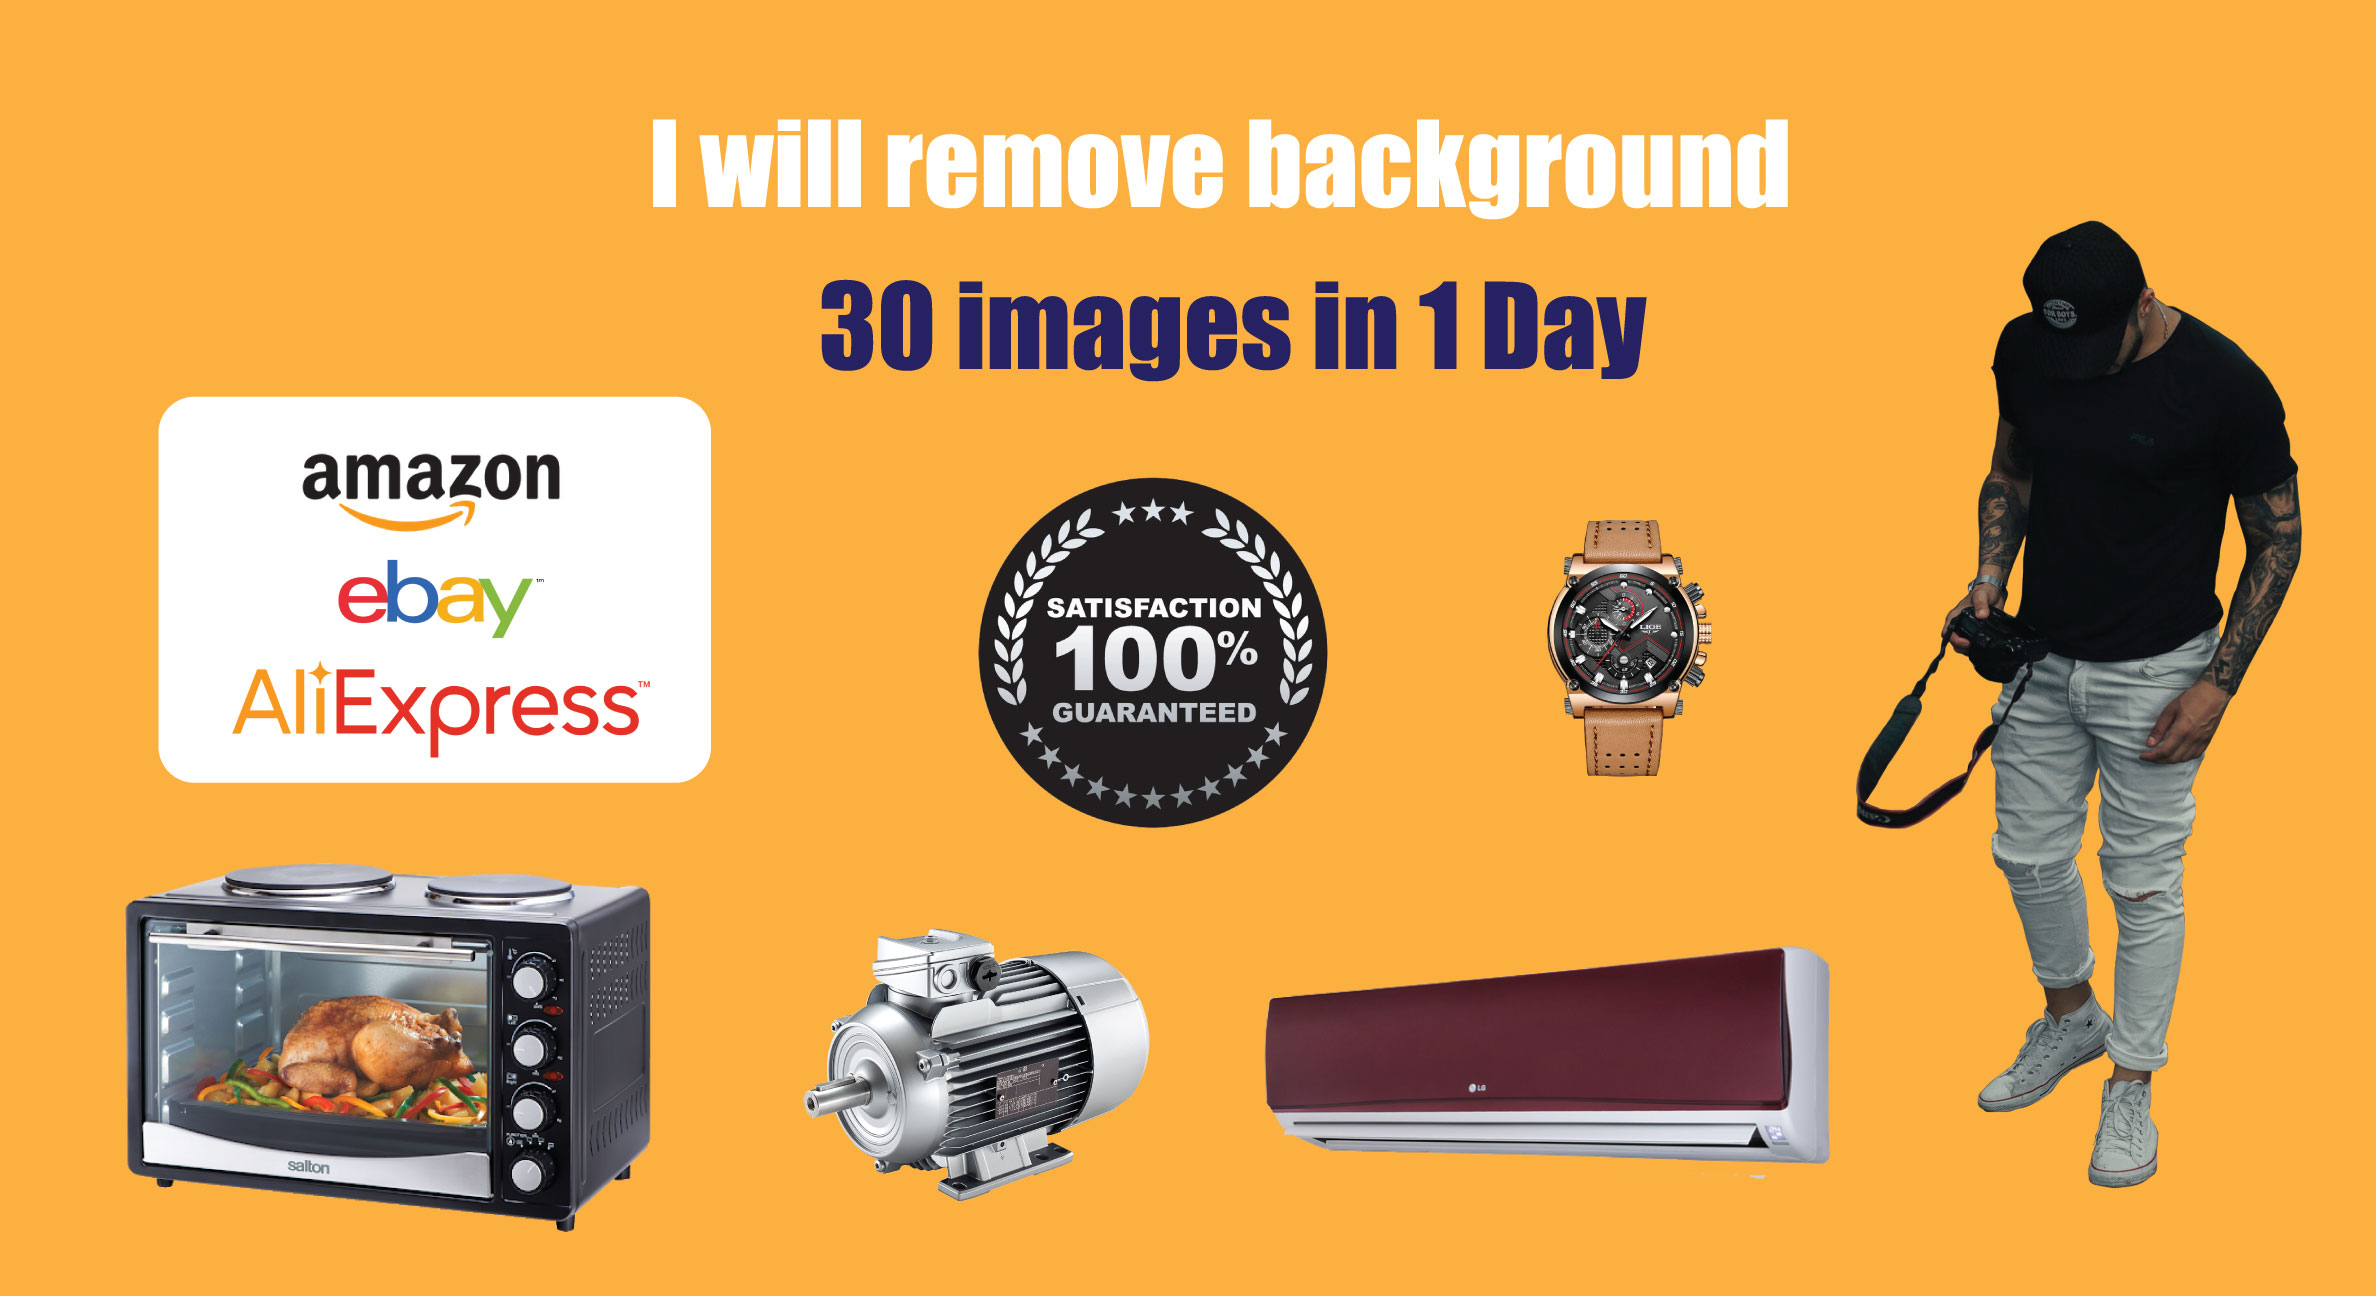 I will remove background 30 images in 1 Day